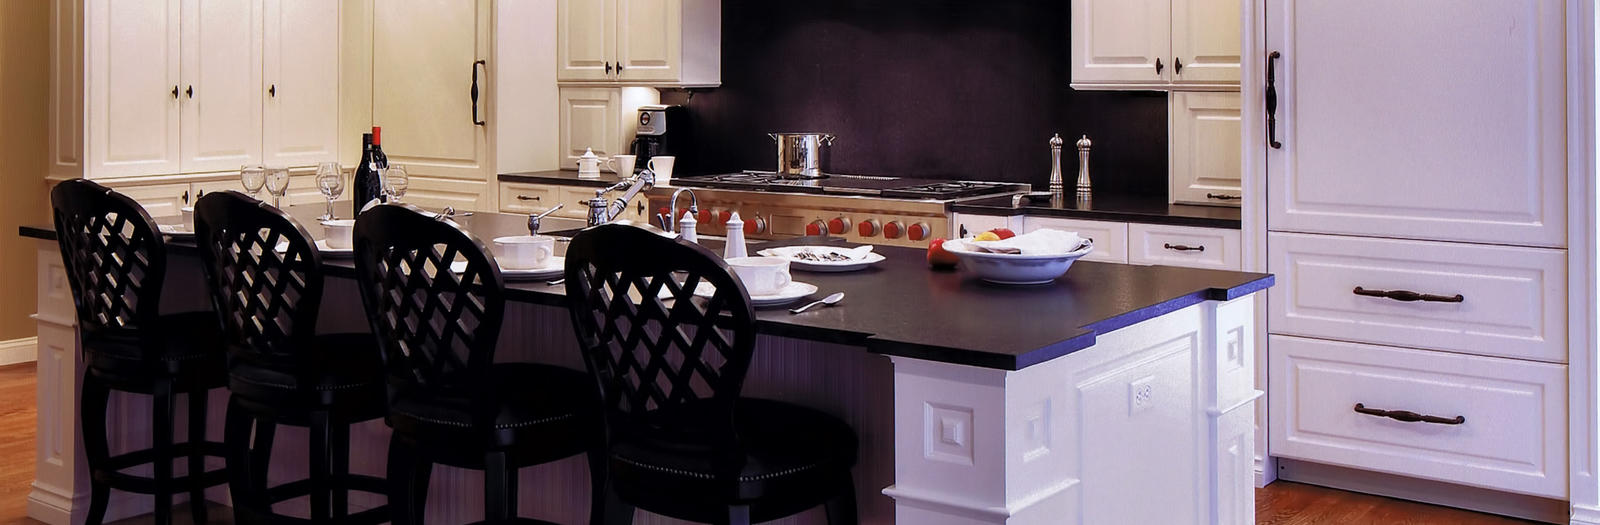 Transitional Kitchen with island with barstool seating